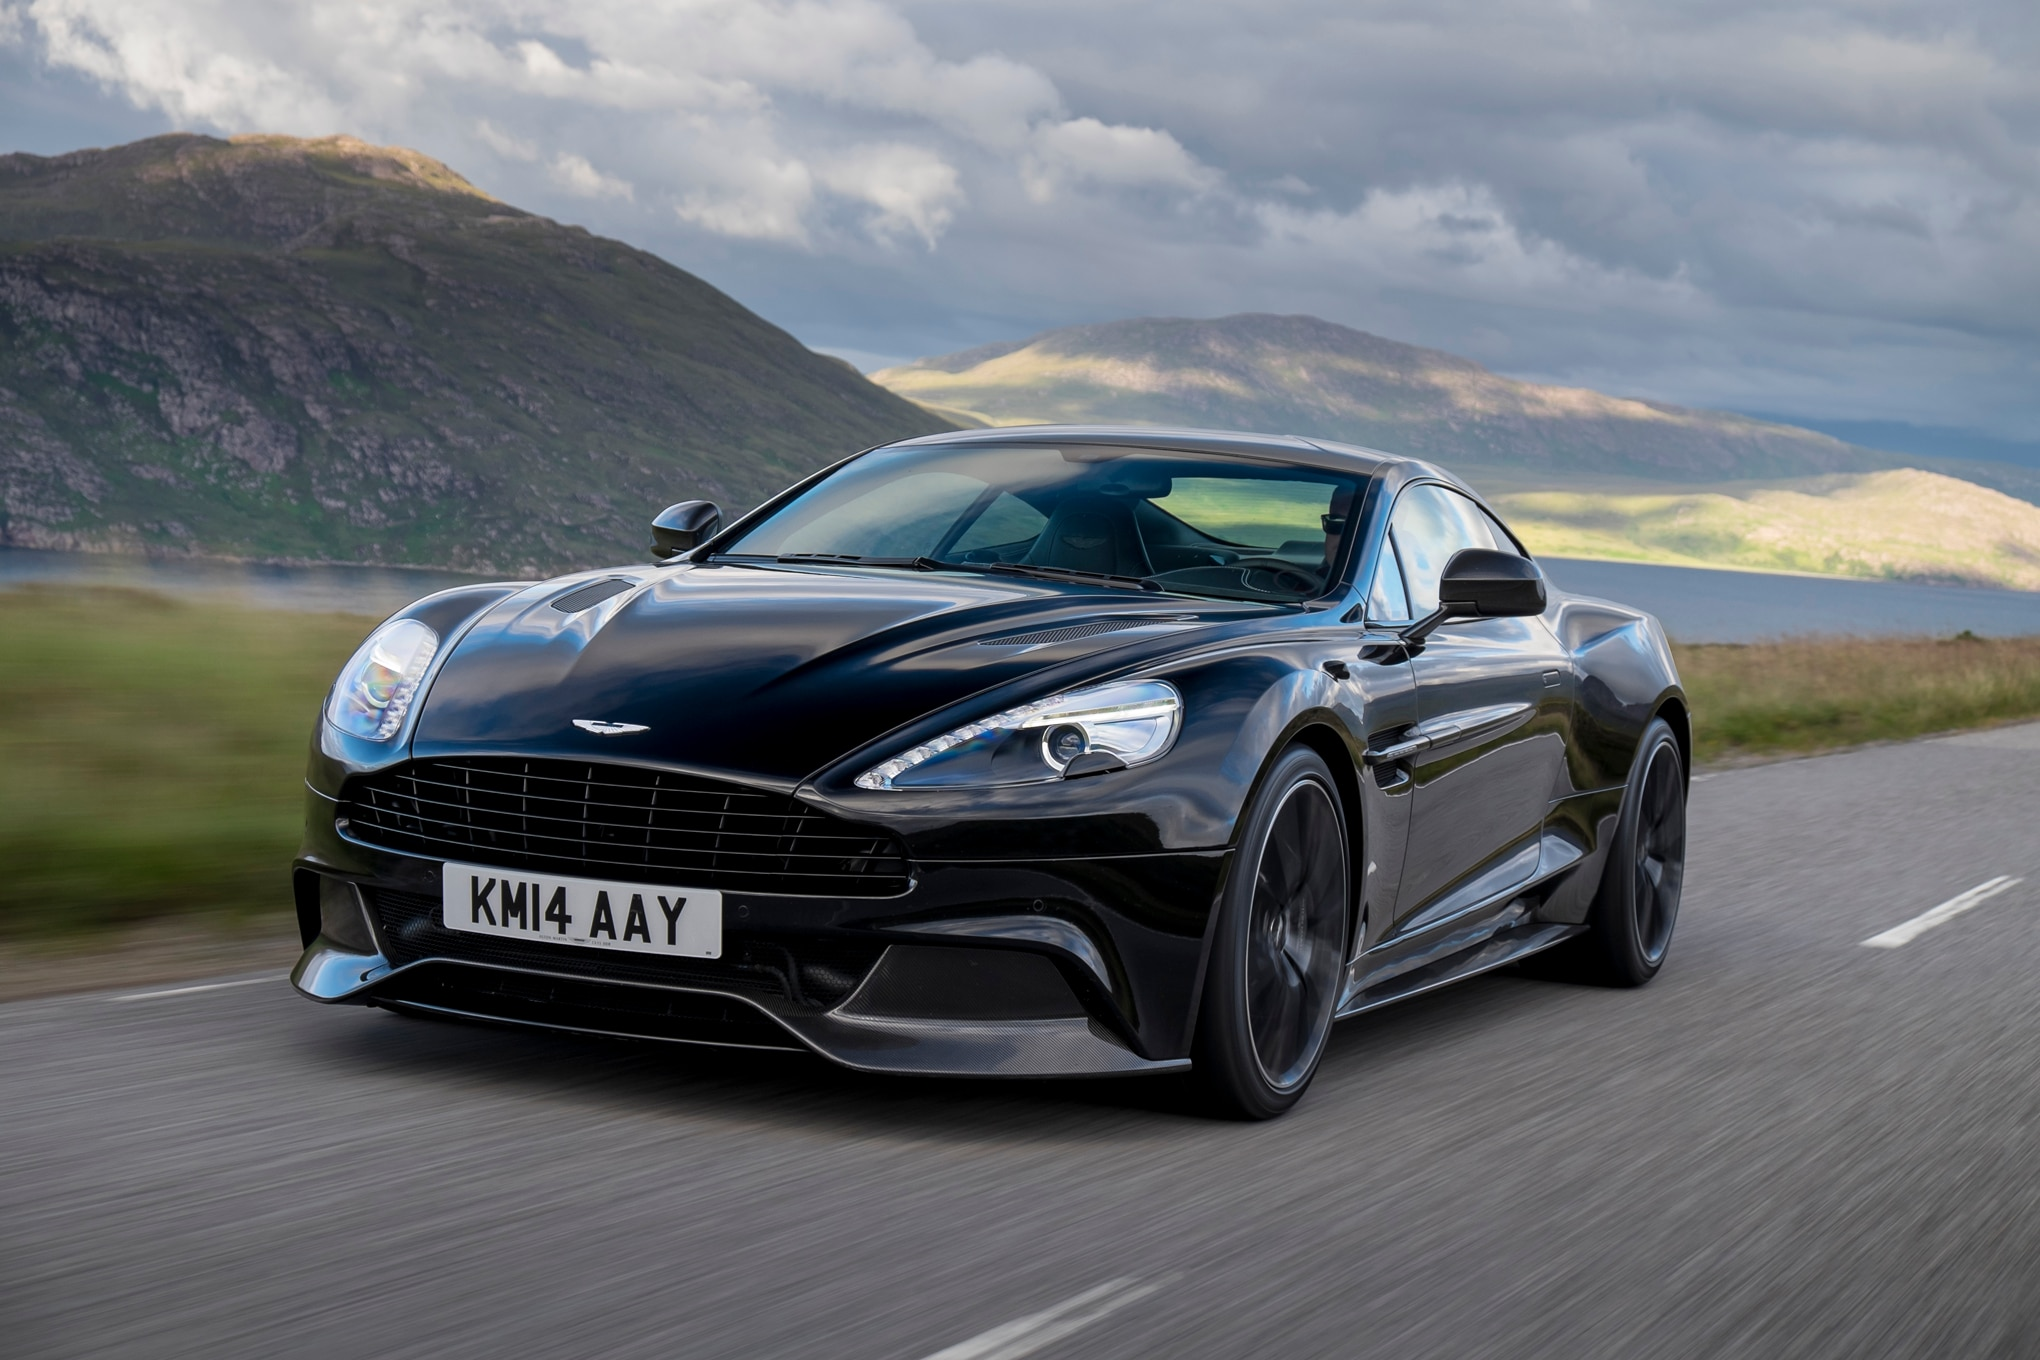 2015 Aston Martin Vanquish, Rapide S Review